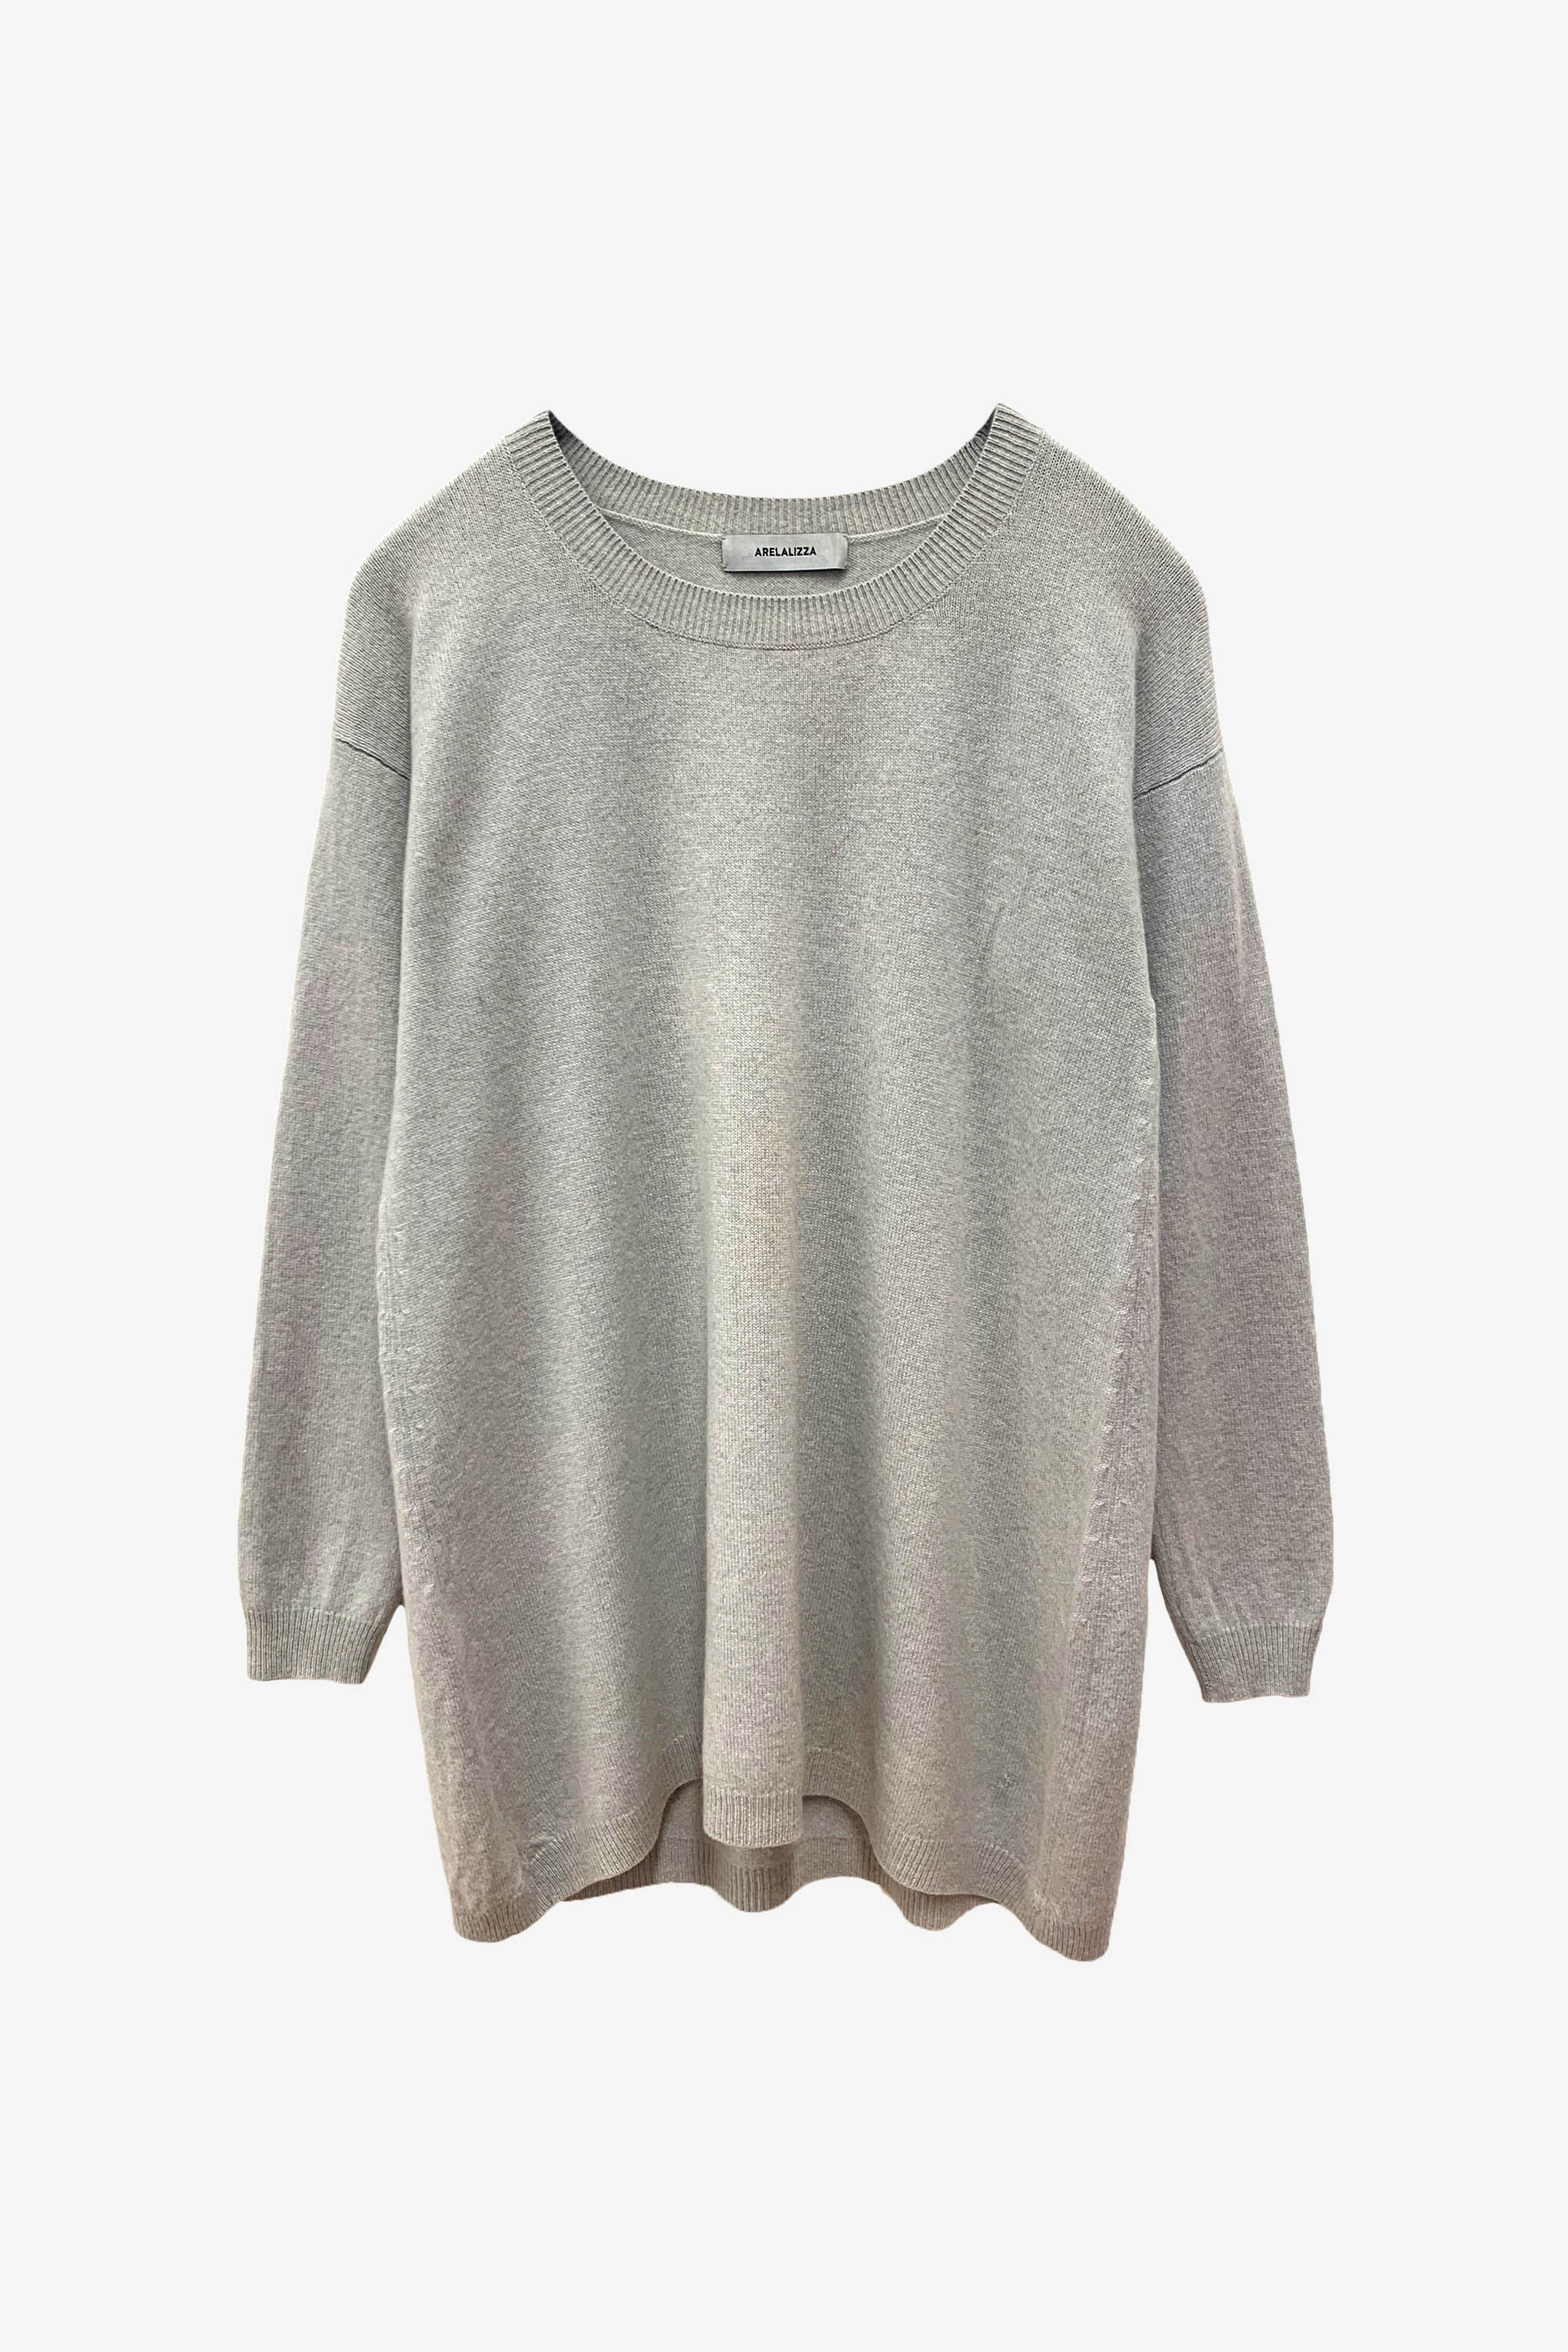 For Good: Grey tunic, size M/L